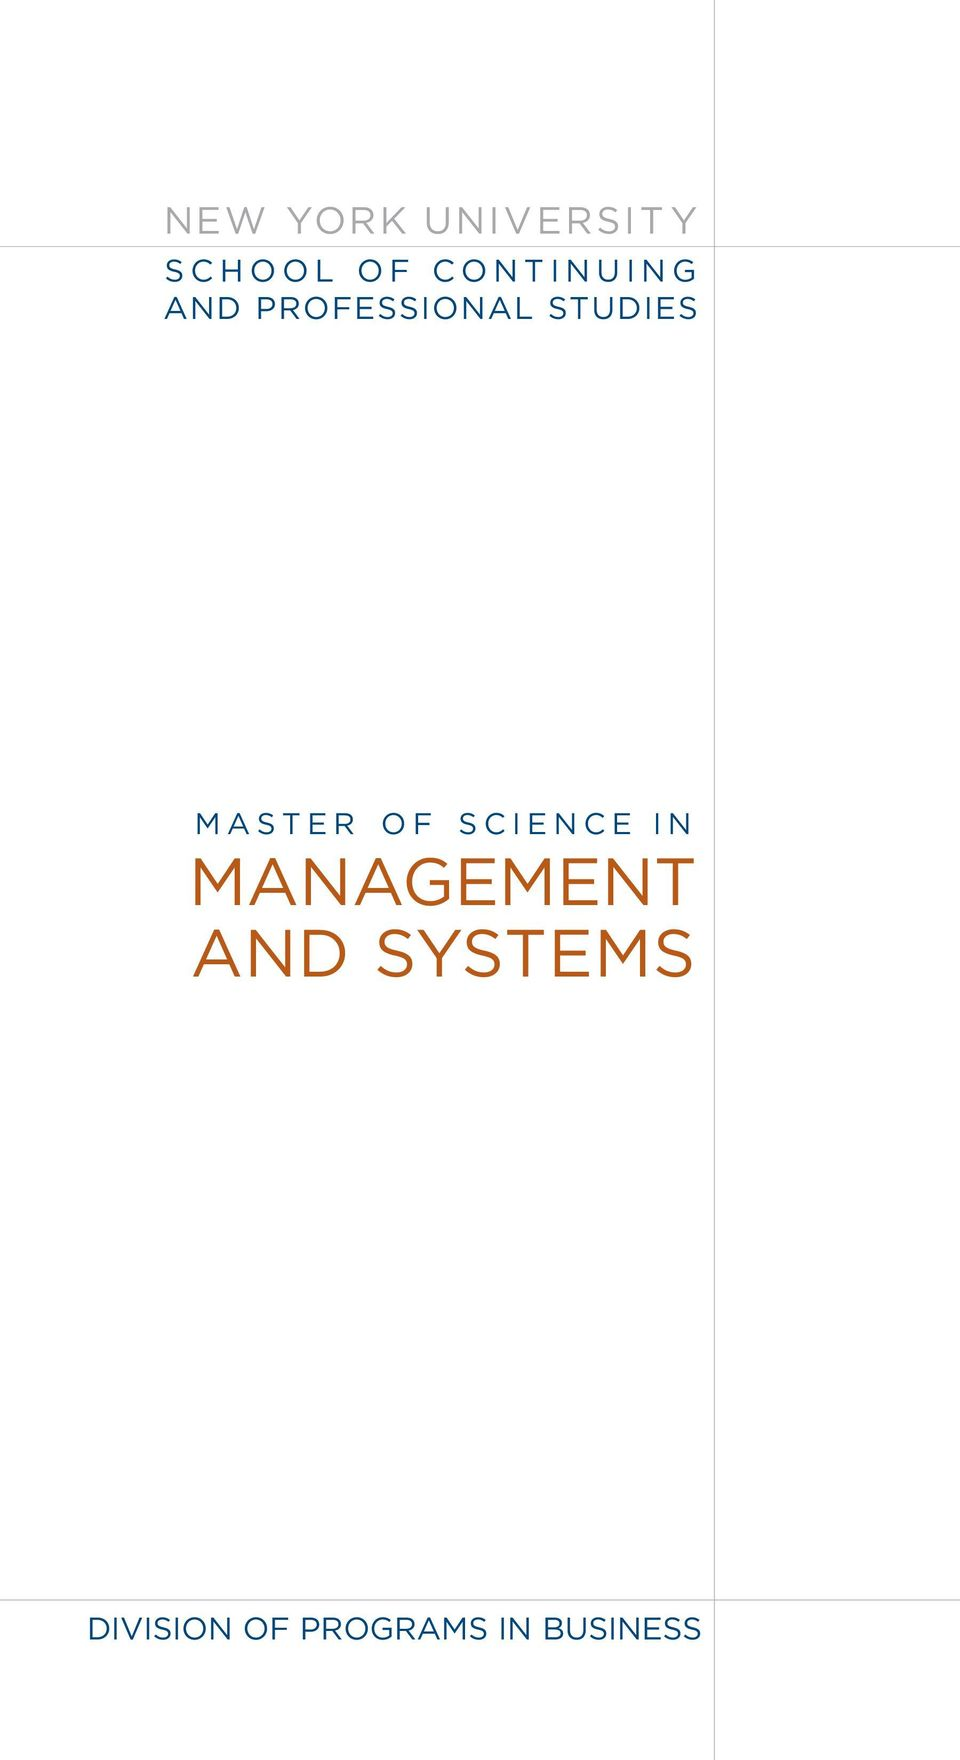 MASTER OF SCIENCE IN MANAGEMENT AND